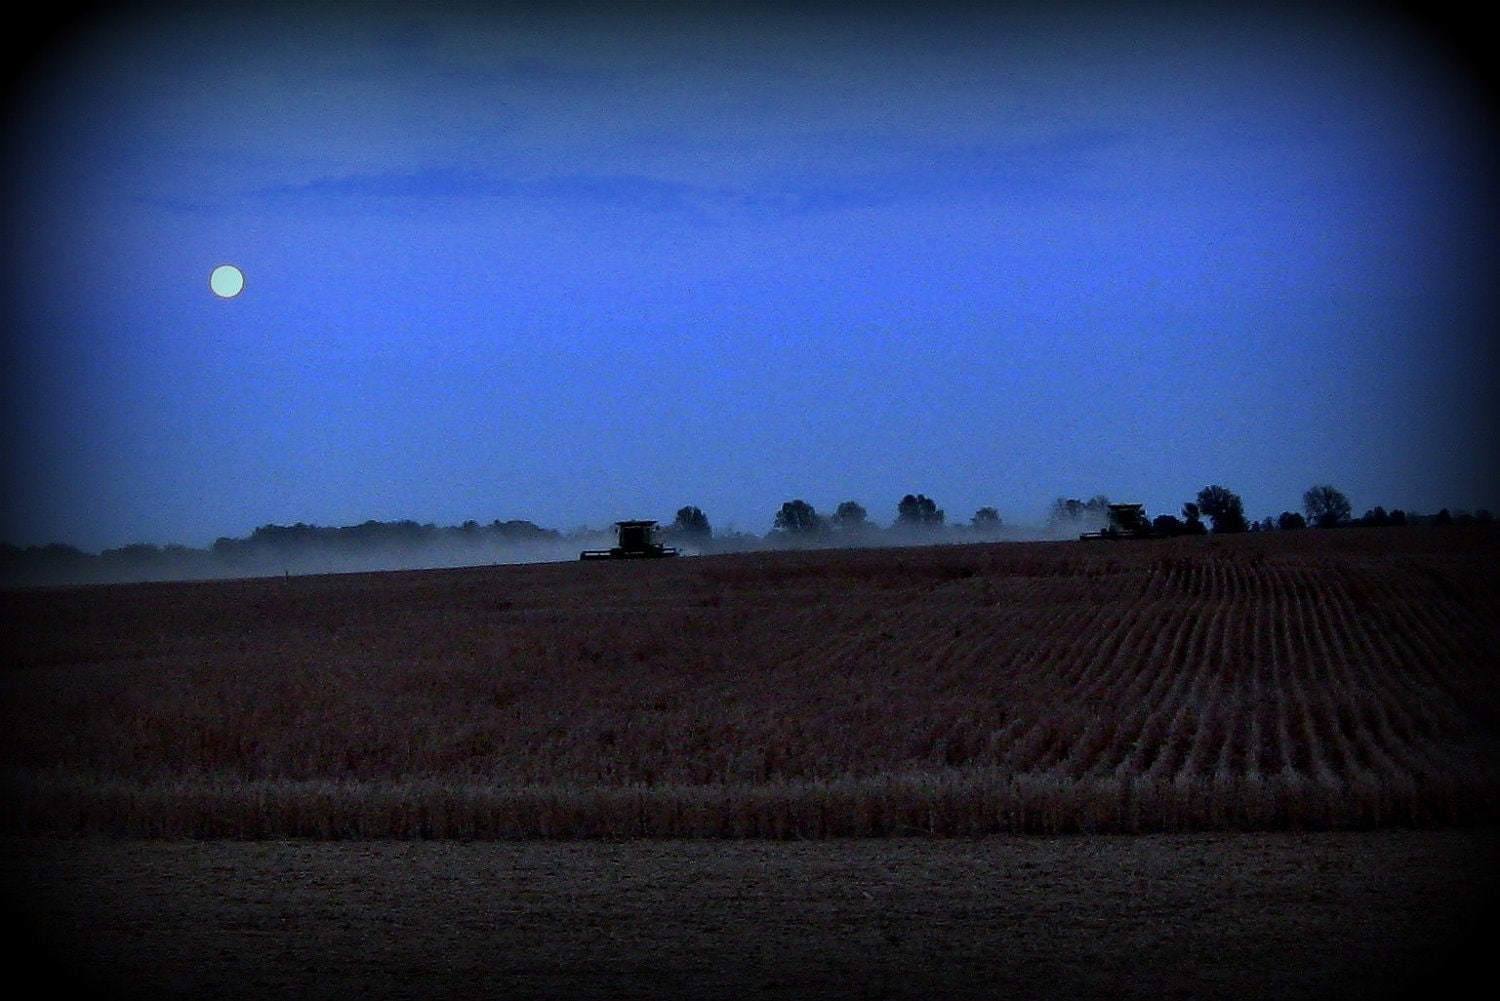 Moonlight Harvest - 8 x 12 Fine Art Photography - Night Dark Farm Machinery Combine Field, Modern Rustic Decor - FREE SHIPPING - Tagt Team